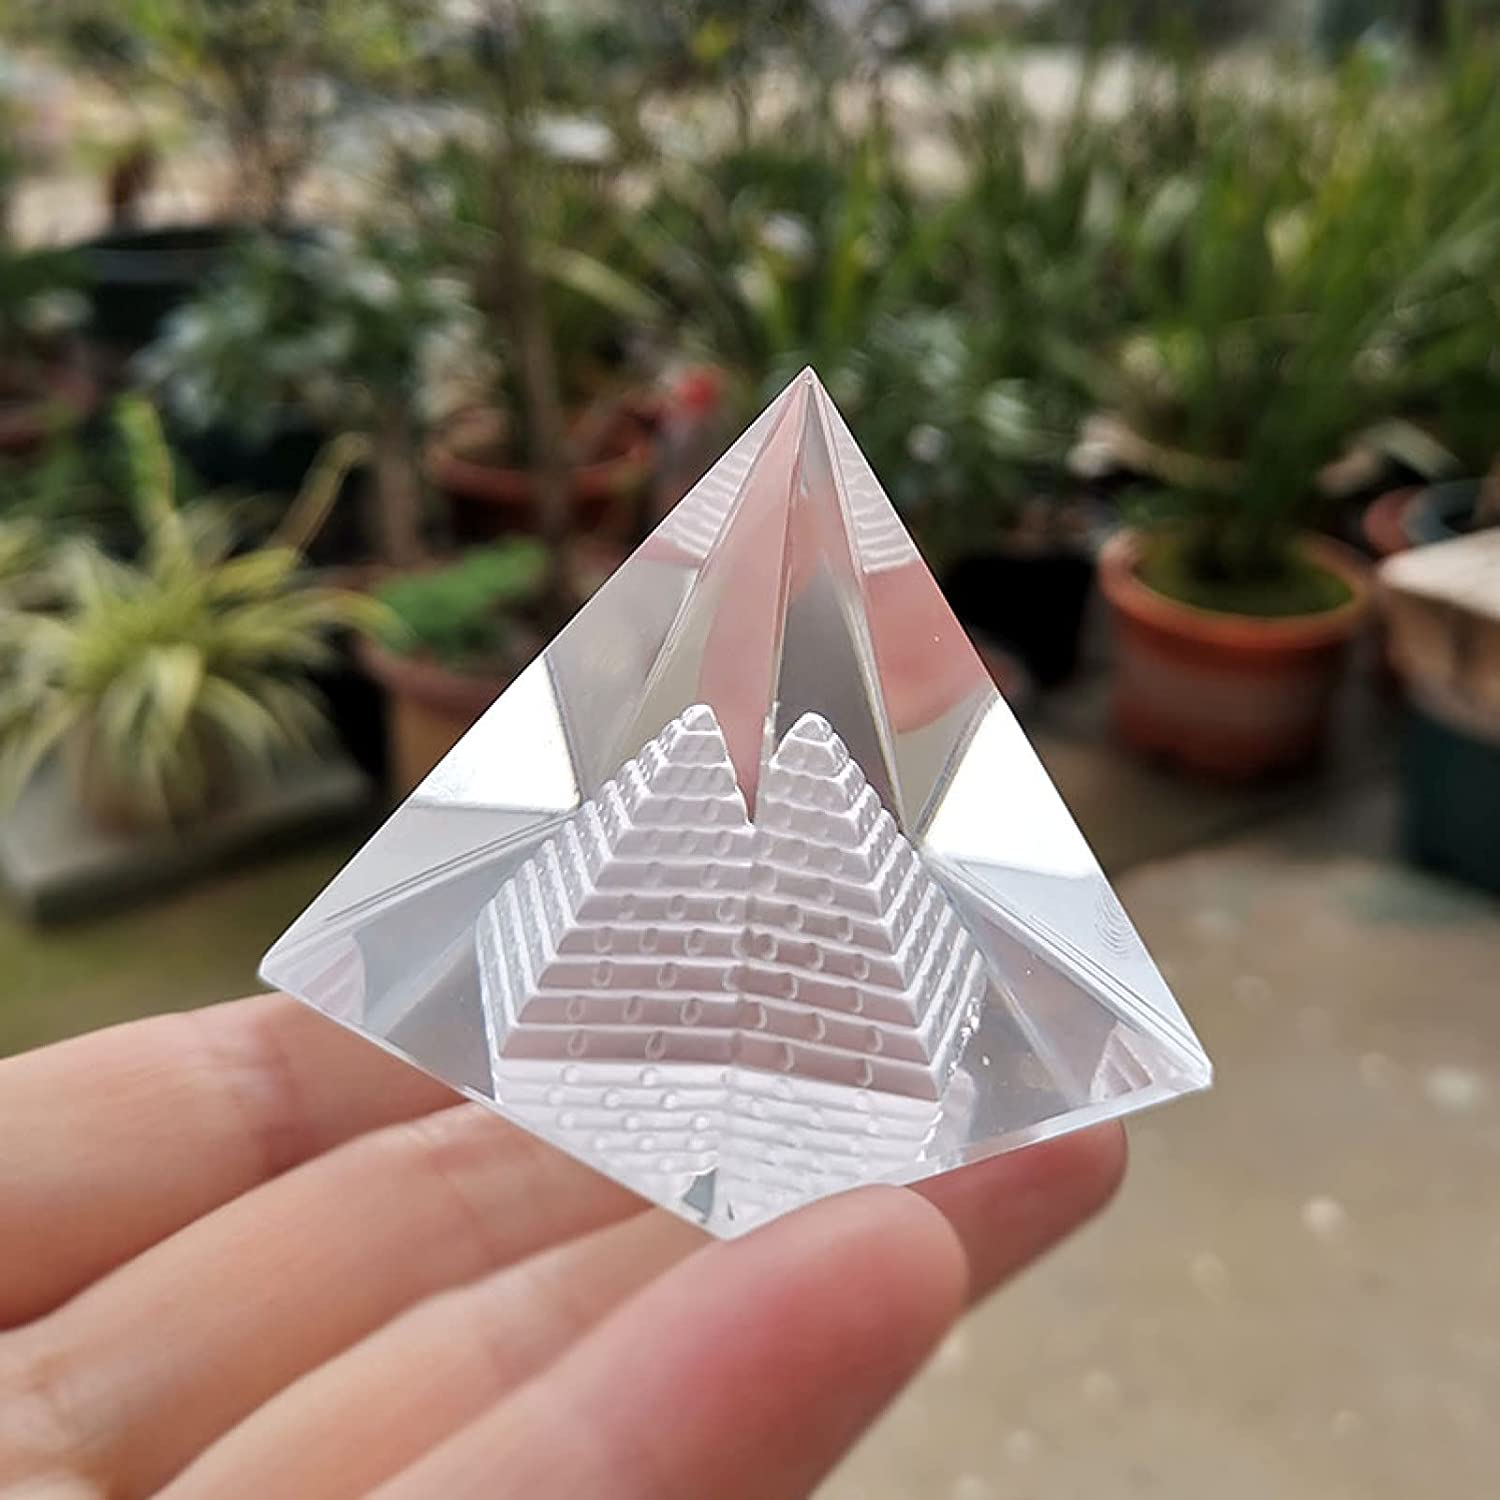 Crystal Japan Maker New Hollow Egypt Factory outlet Pyramid Glass Figurine Paperweight Fengshui